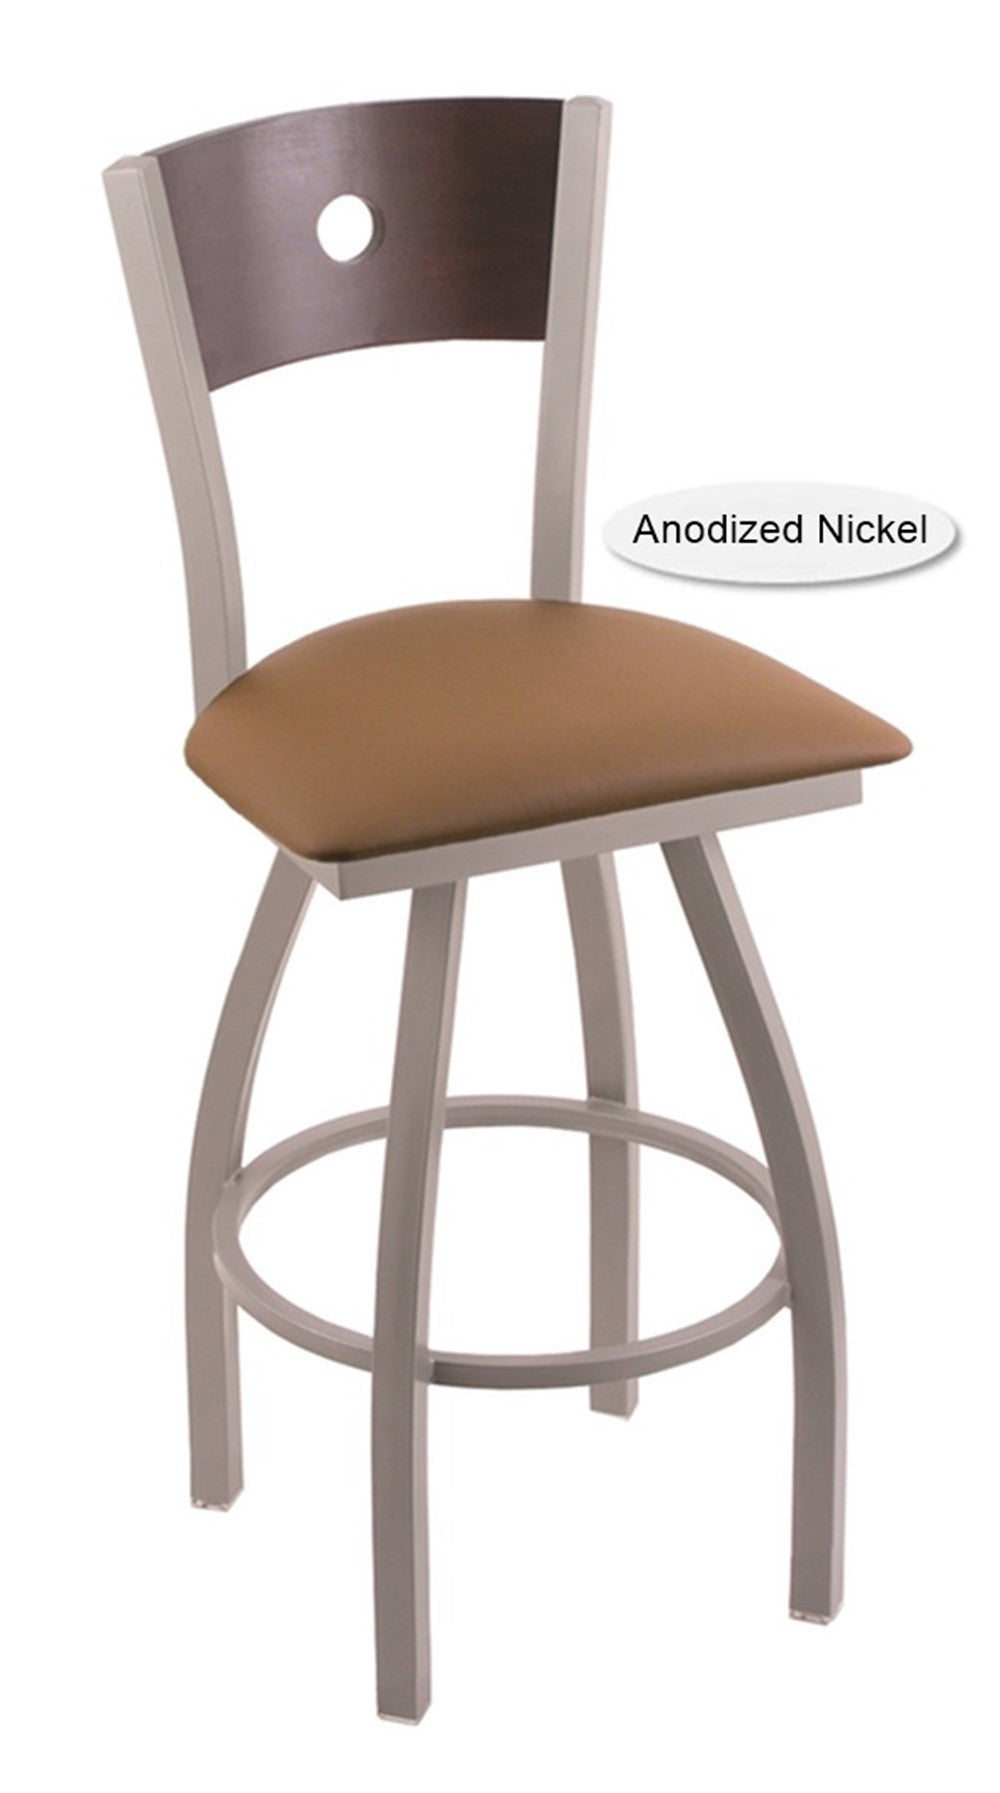 Big and Tall XL Anodized Nickel Voltaire Swivel Bar Stool